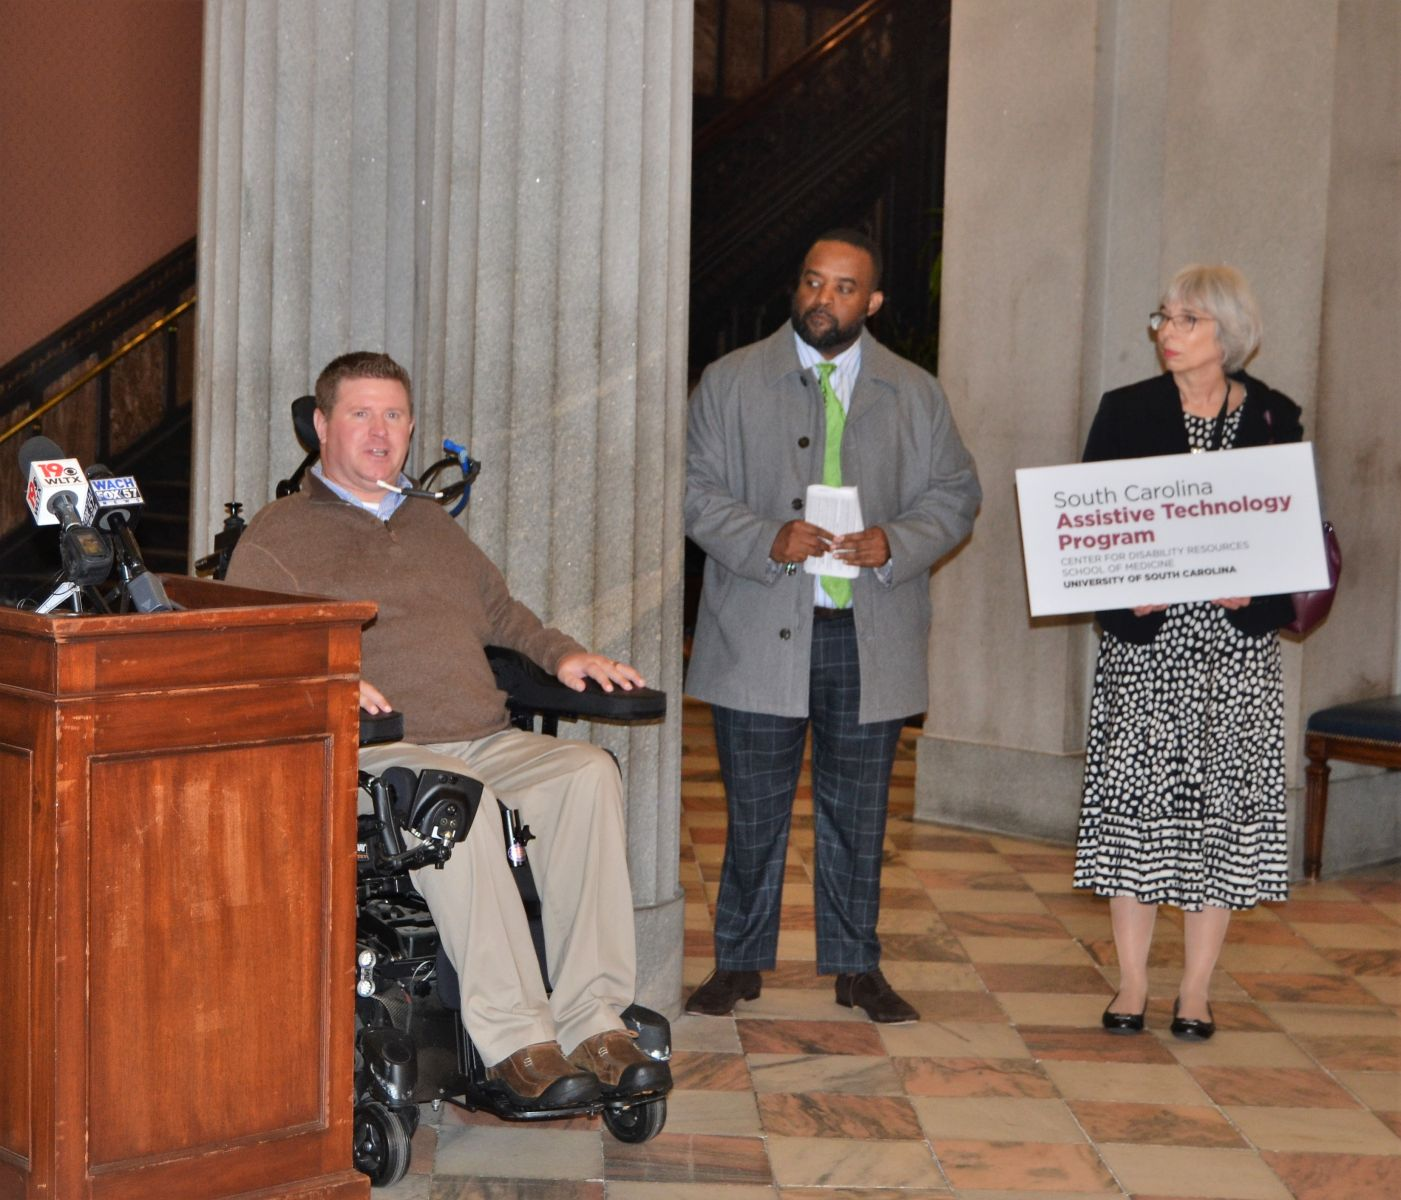 Brian Denny (left), outreach coordinator at the S.C. Spinal Cord Injury Association, speaks during a Feb. 26 ceremony at the Statehouse designating March as Assistive Technology Awareness Month. (Photo/Melinda Waldrop)